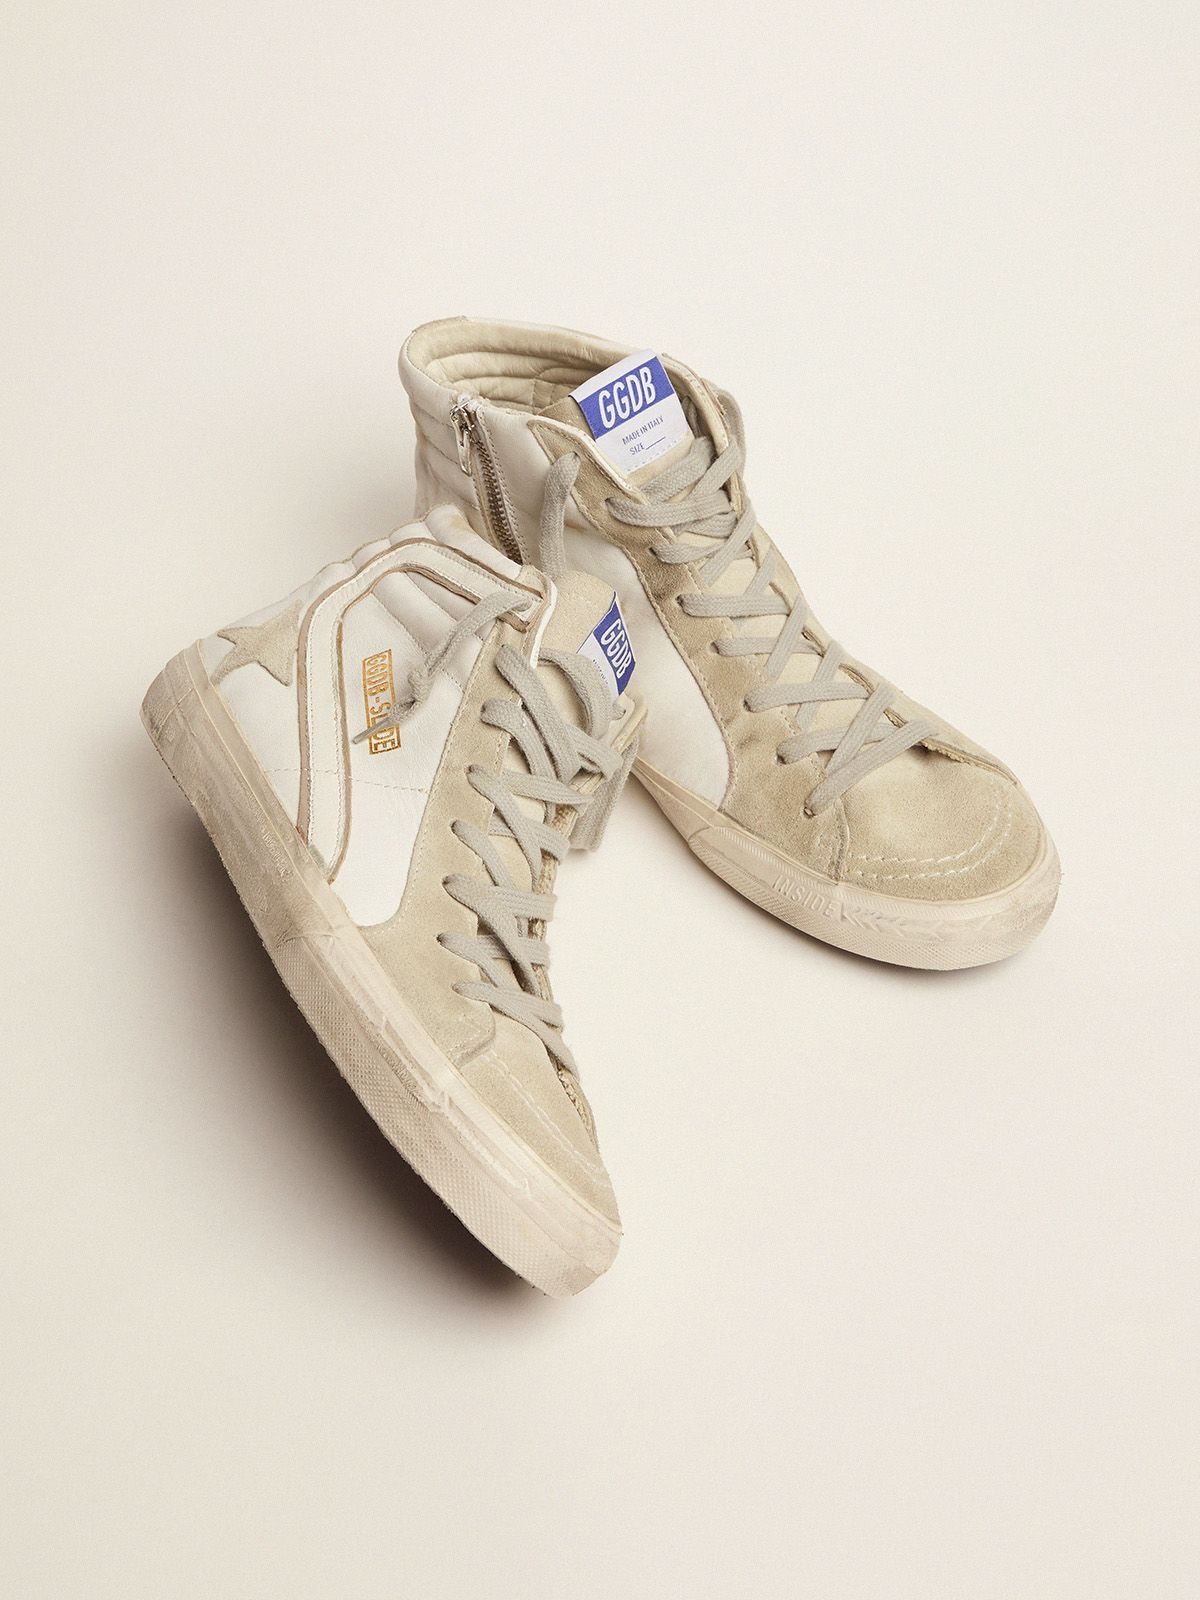 Golden Goose - Slide sneakers in leather with suede star and details in